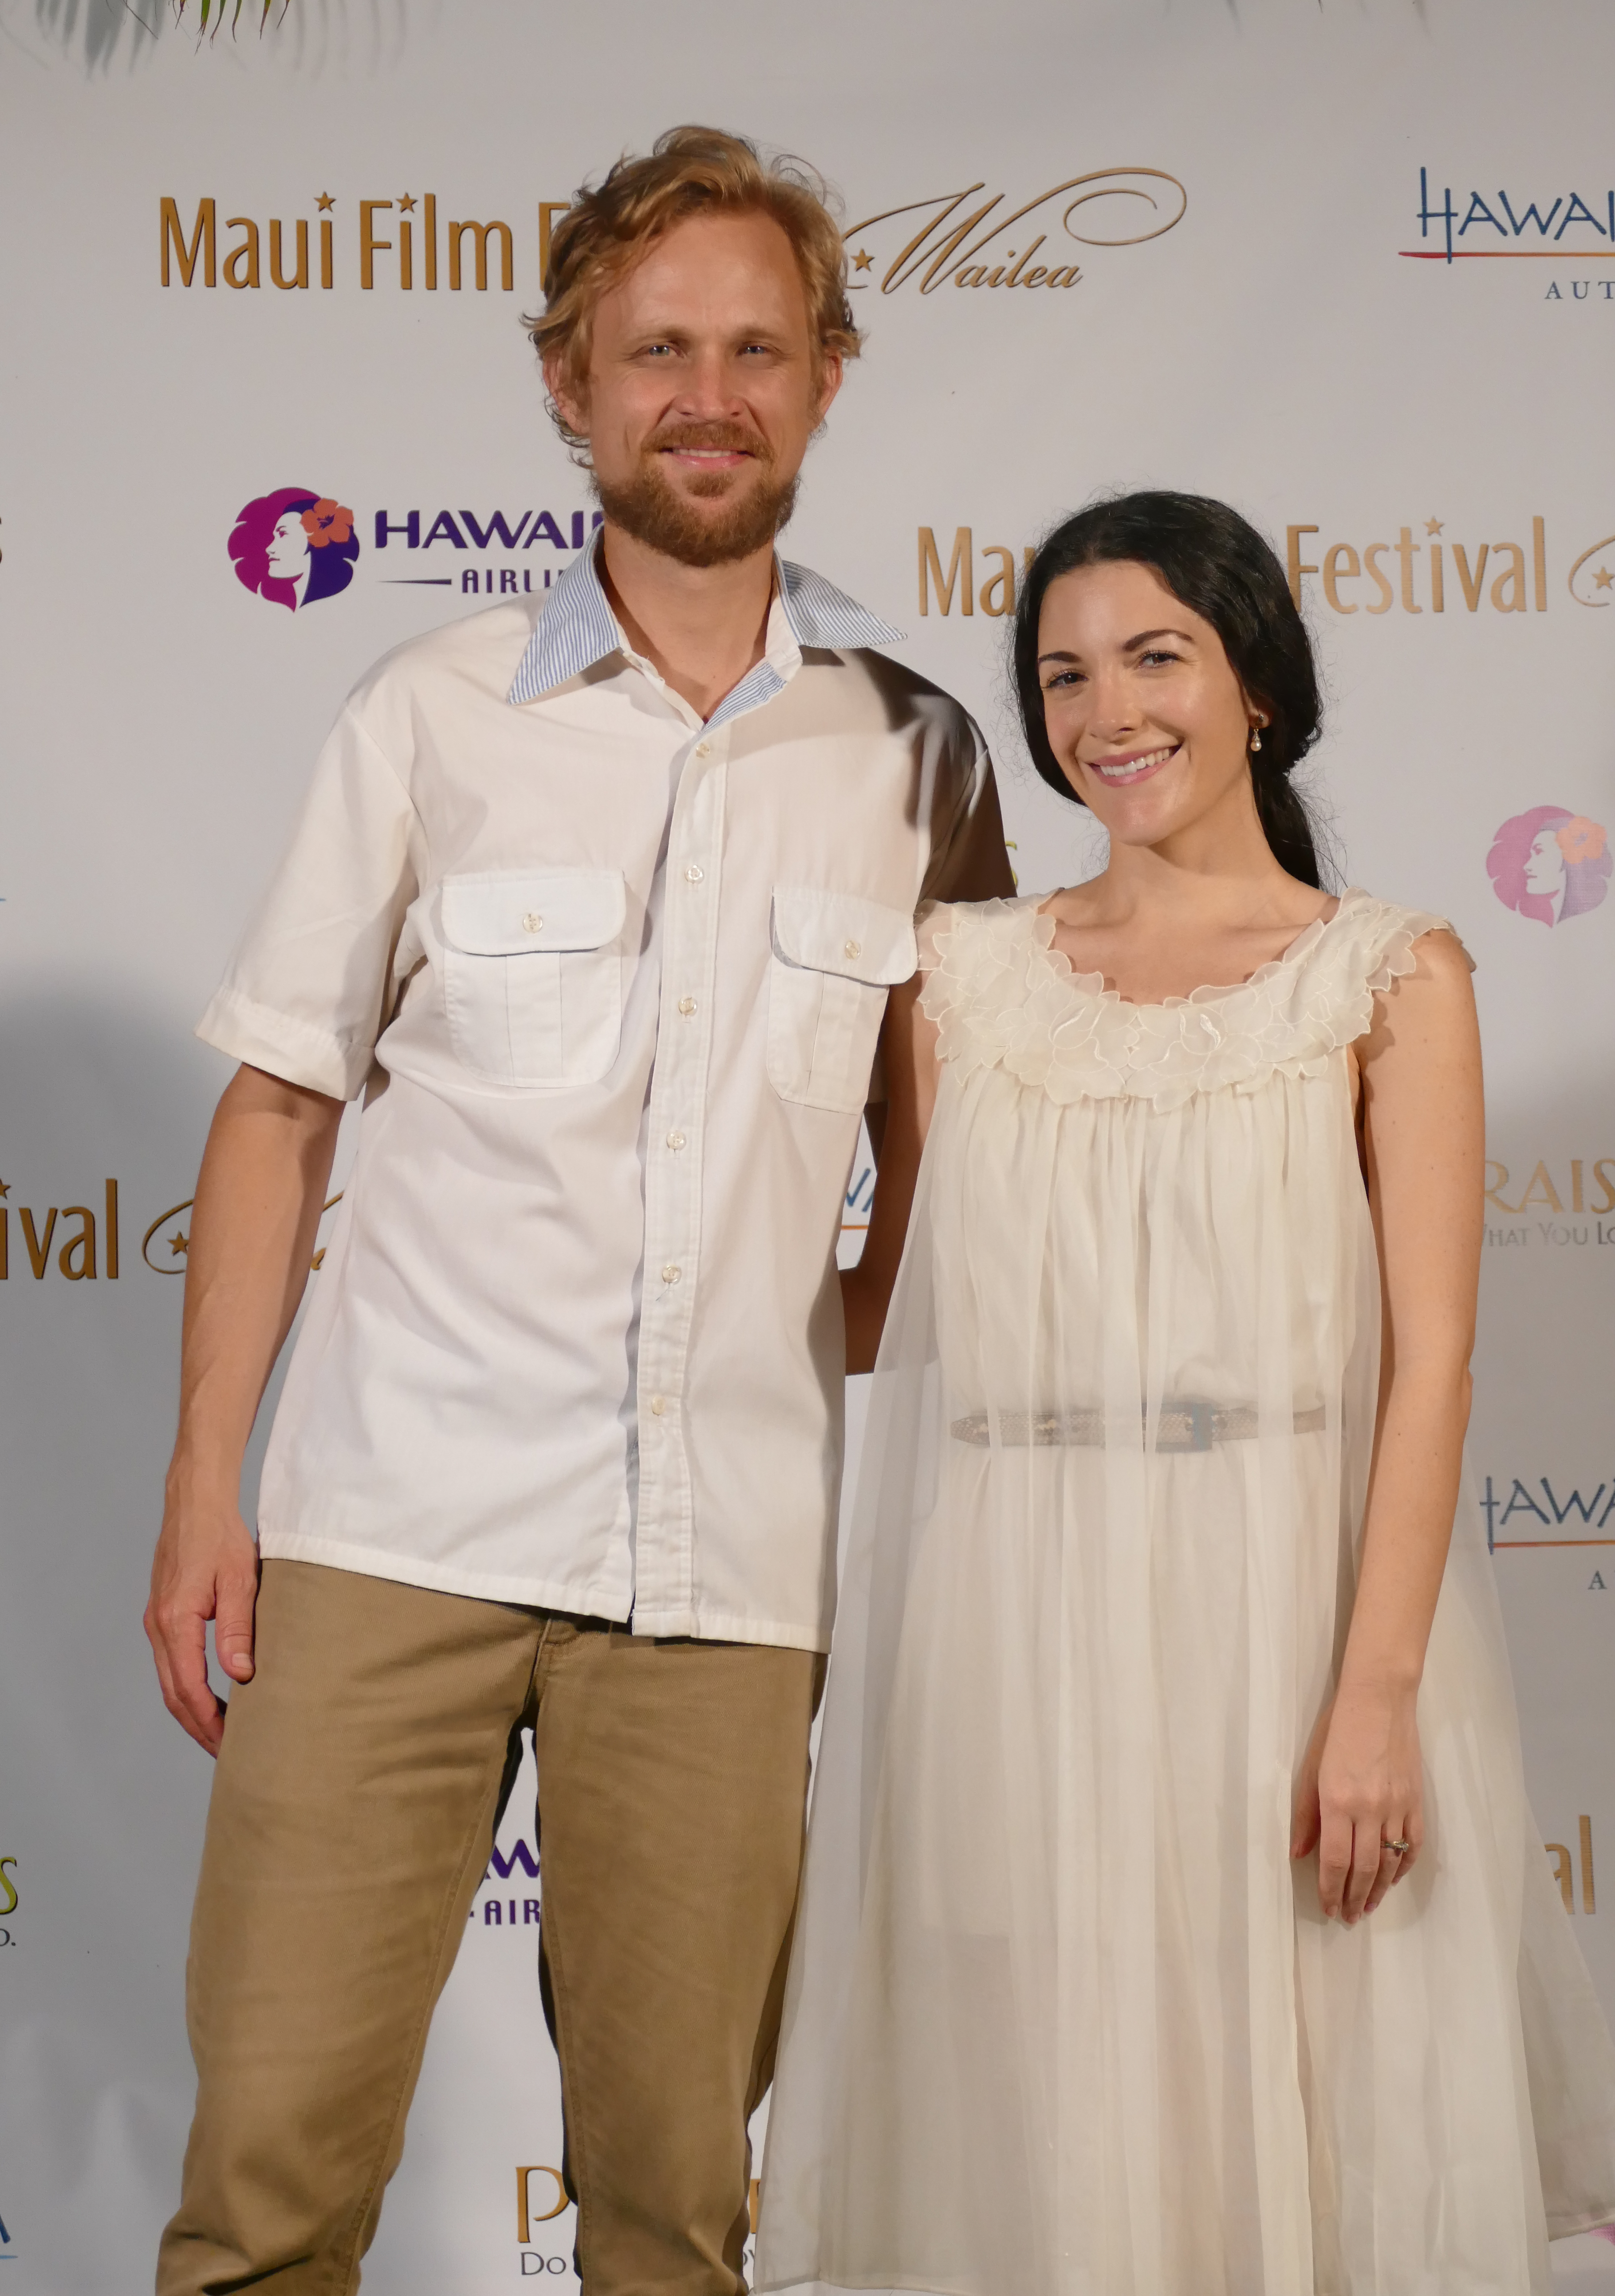 Ryan Jonze and Shannon Beeby at Maui Film Festival